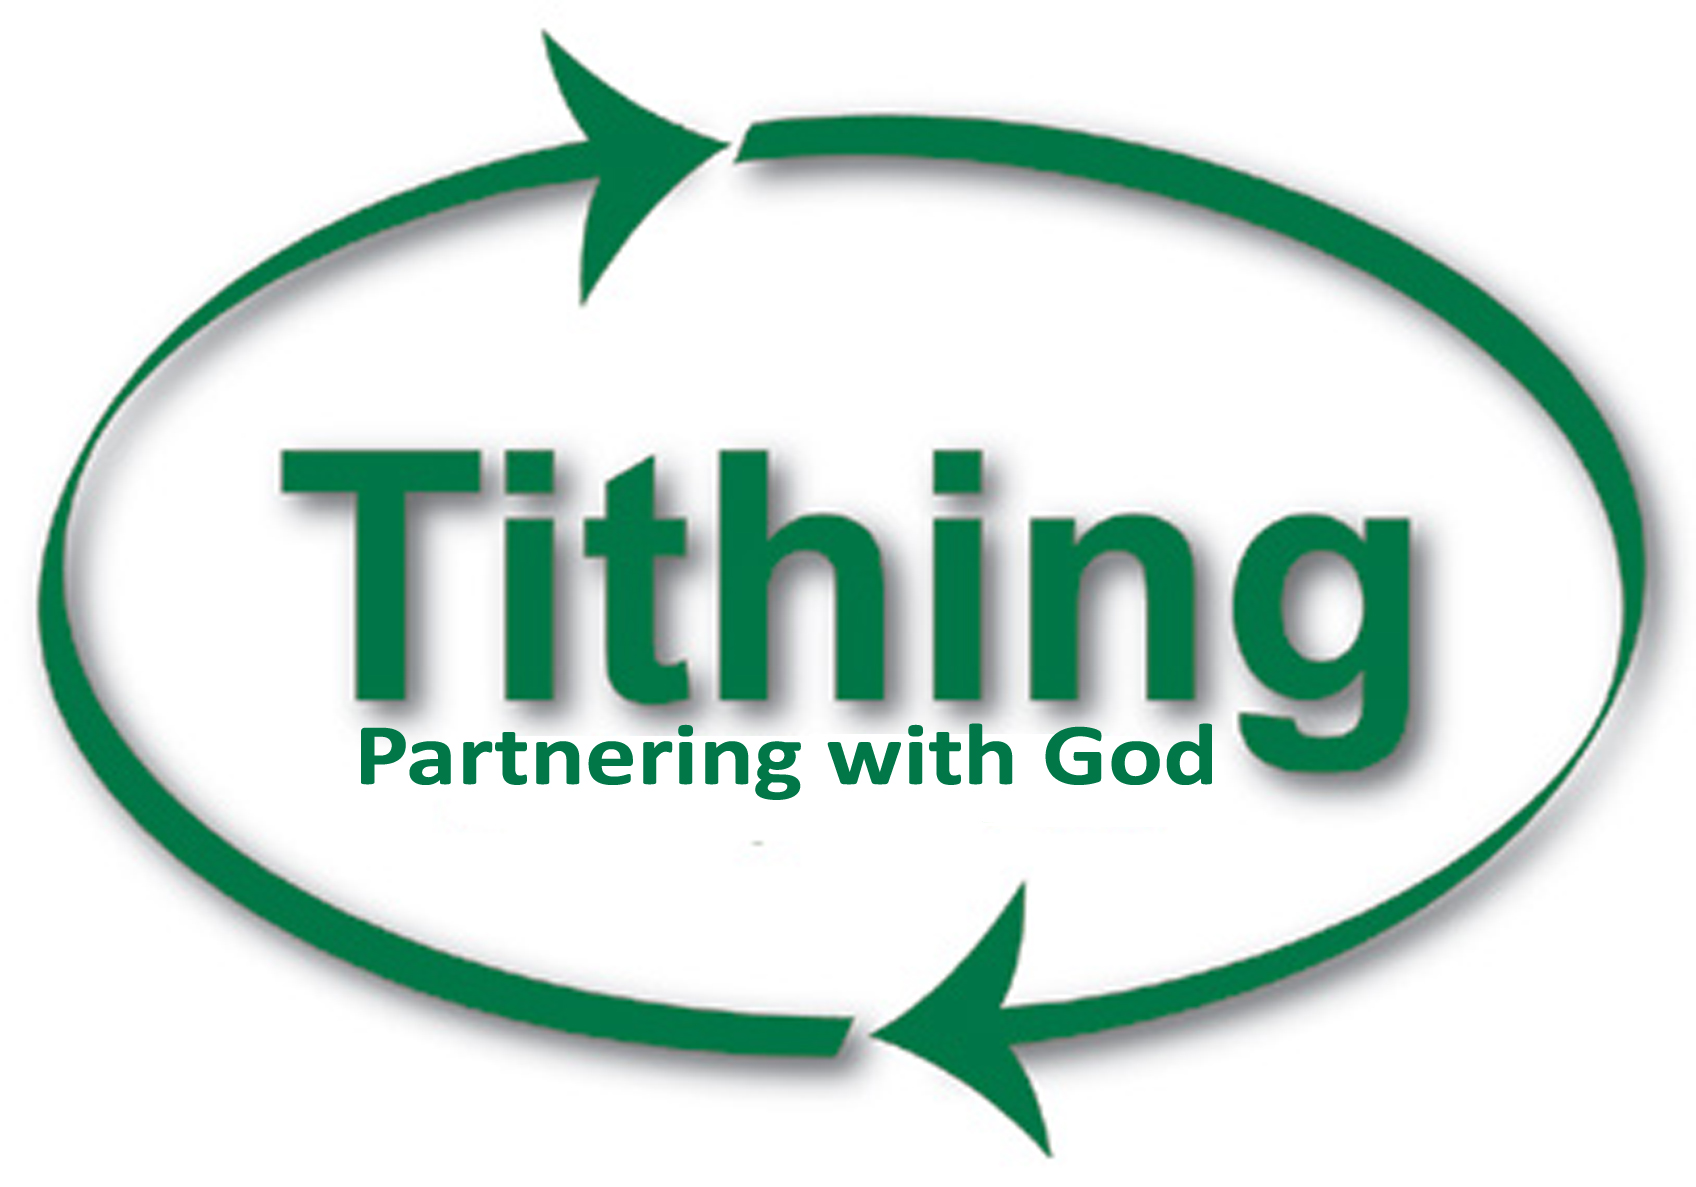 Prophet Climate Ministries tithing-partnership-with-god-2 Thank You 😊 🙏 ☺️ For Your Partnership, God Will Bless You